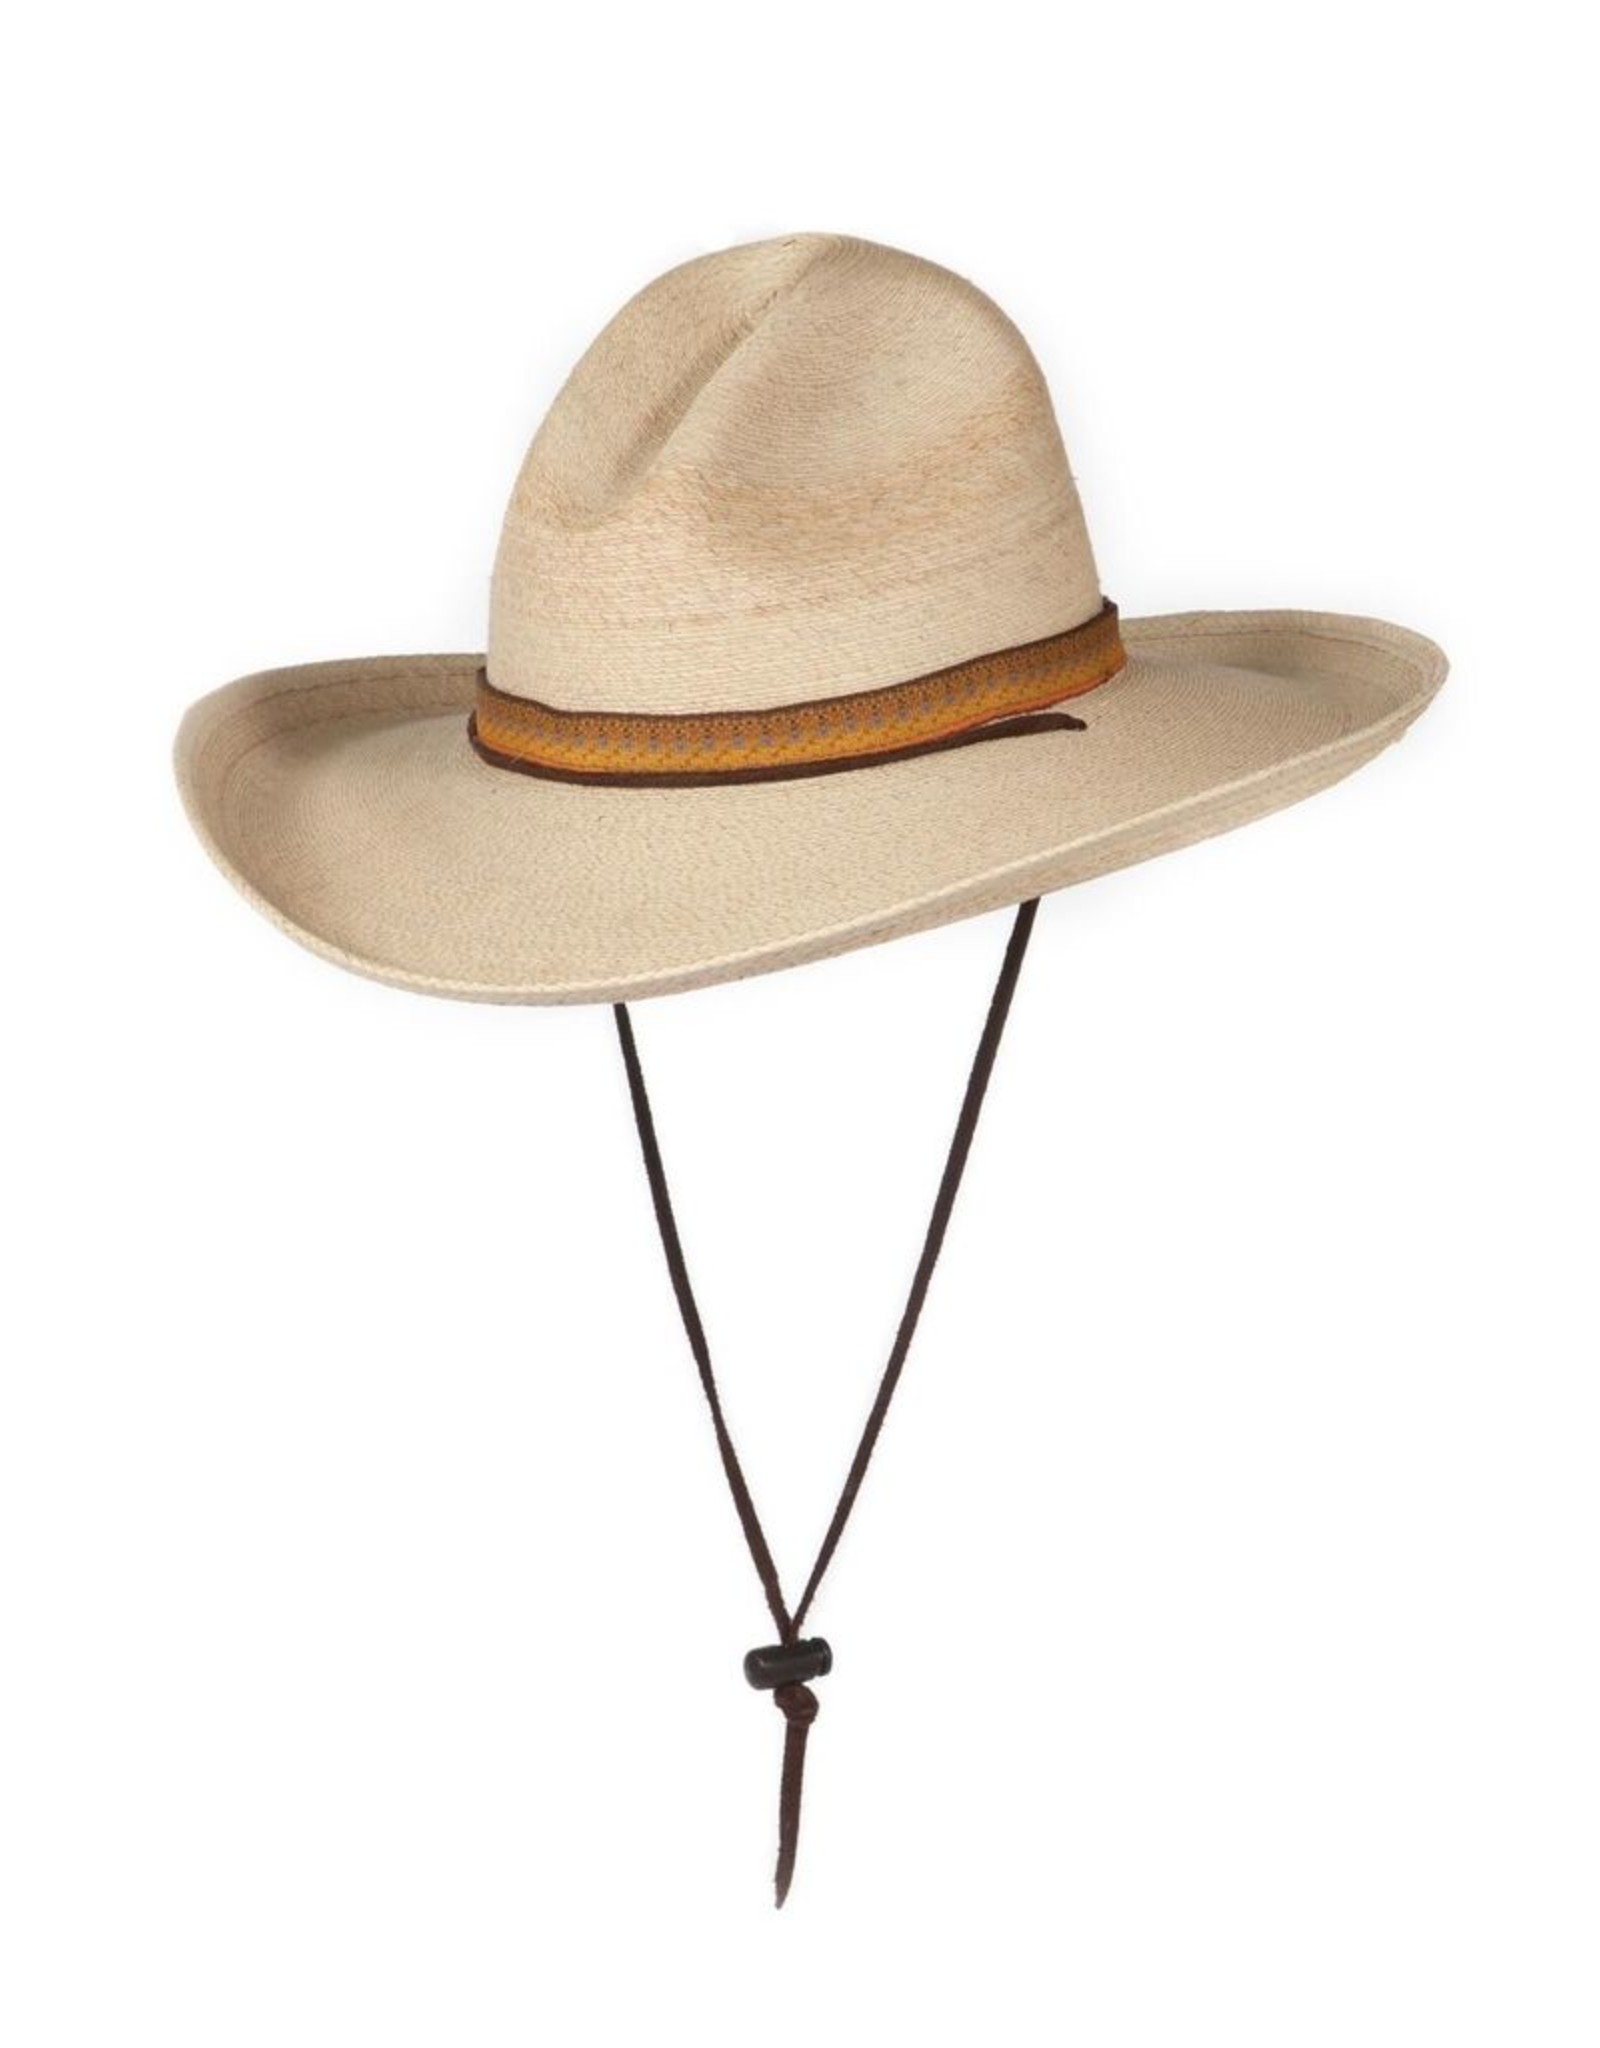 THE SWEEPING ROUND CURVED BRIM AND THE PINCHED CROWN OF A COWBOY HAT WAS POSSIBLY THE MOST DEFINING SYMBOL OF THE AMERICAN WEST.